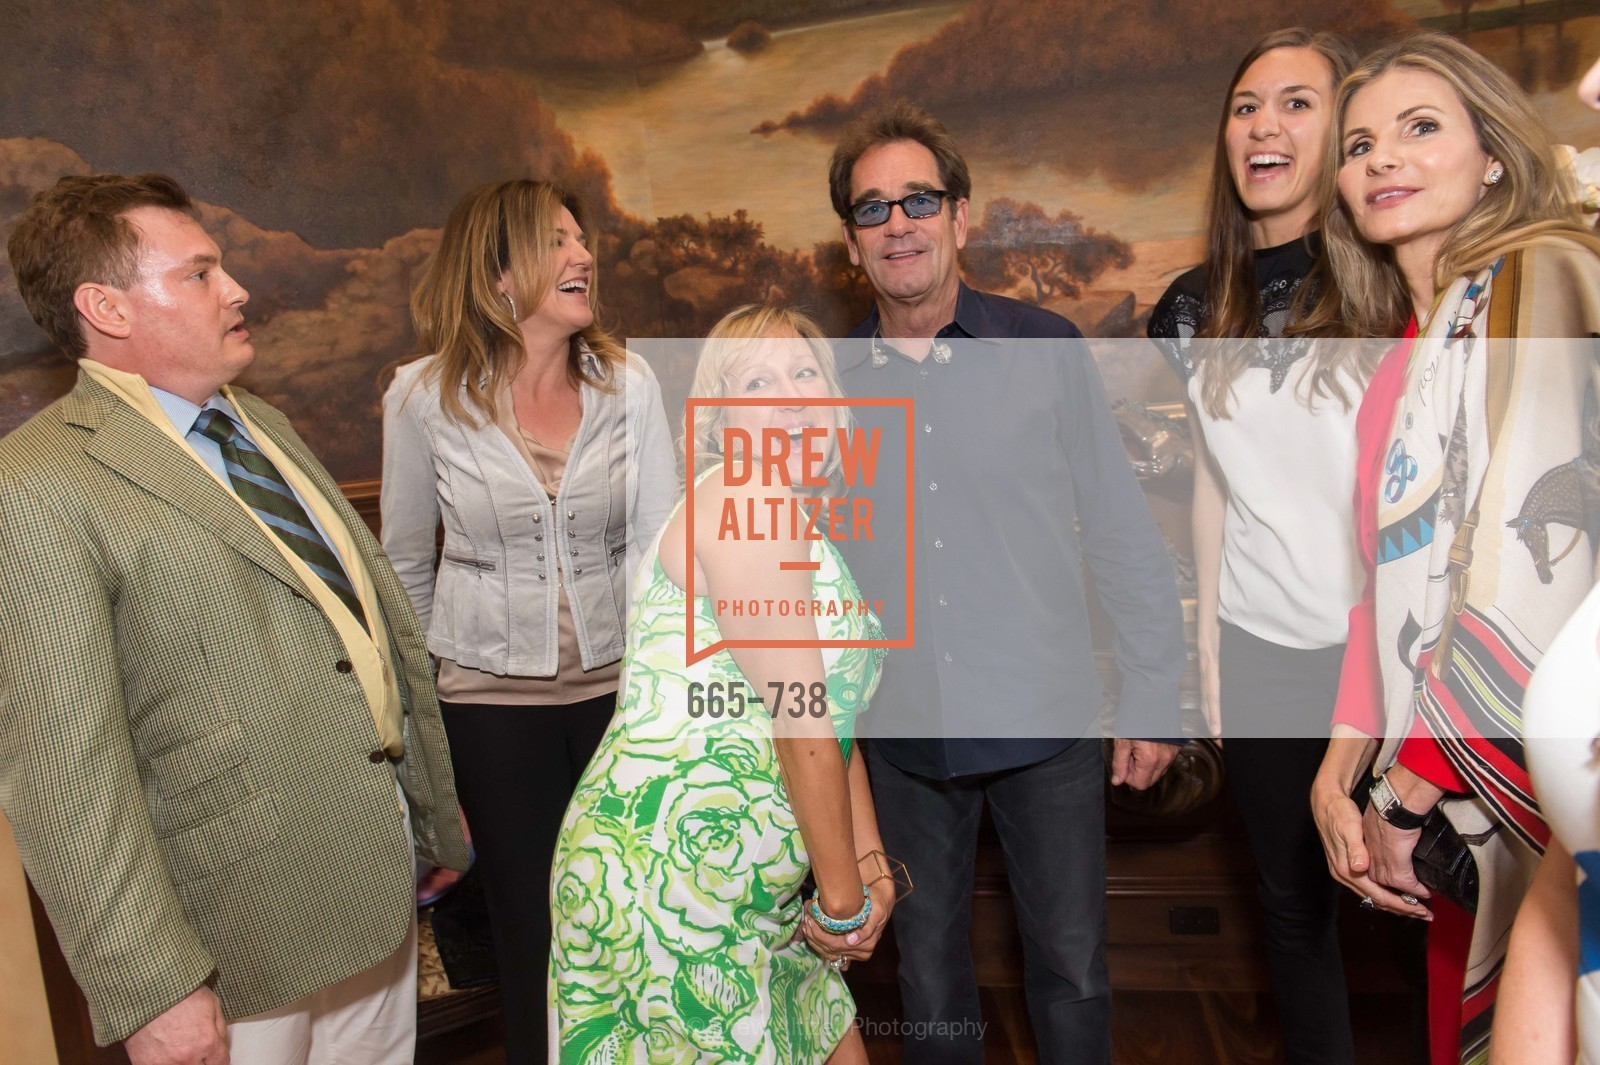 Princess Julia Shaw, Huey Lewis, LymeAid 2015, US, May 18th, 2015,Drew Altizer, Drew Altizer Photography, full-service agency, private events, San Francisco photographer, photographer california